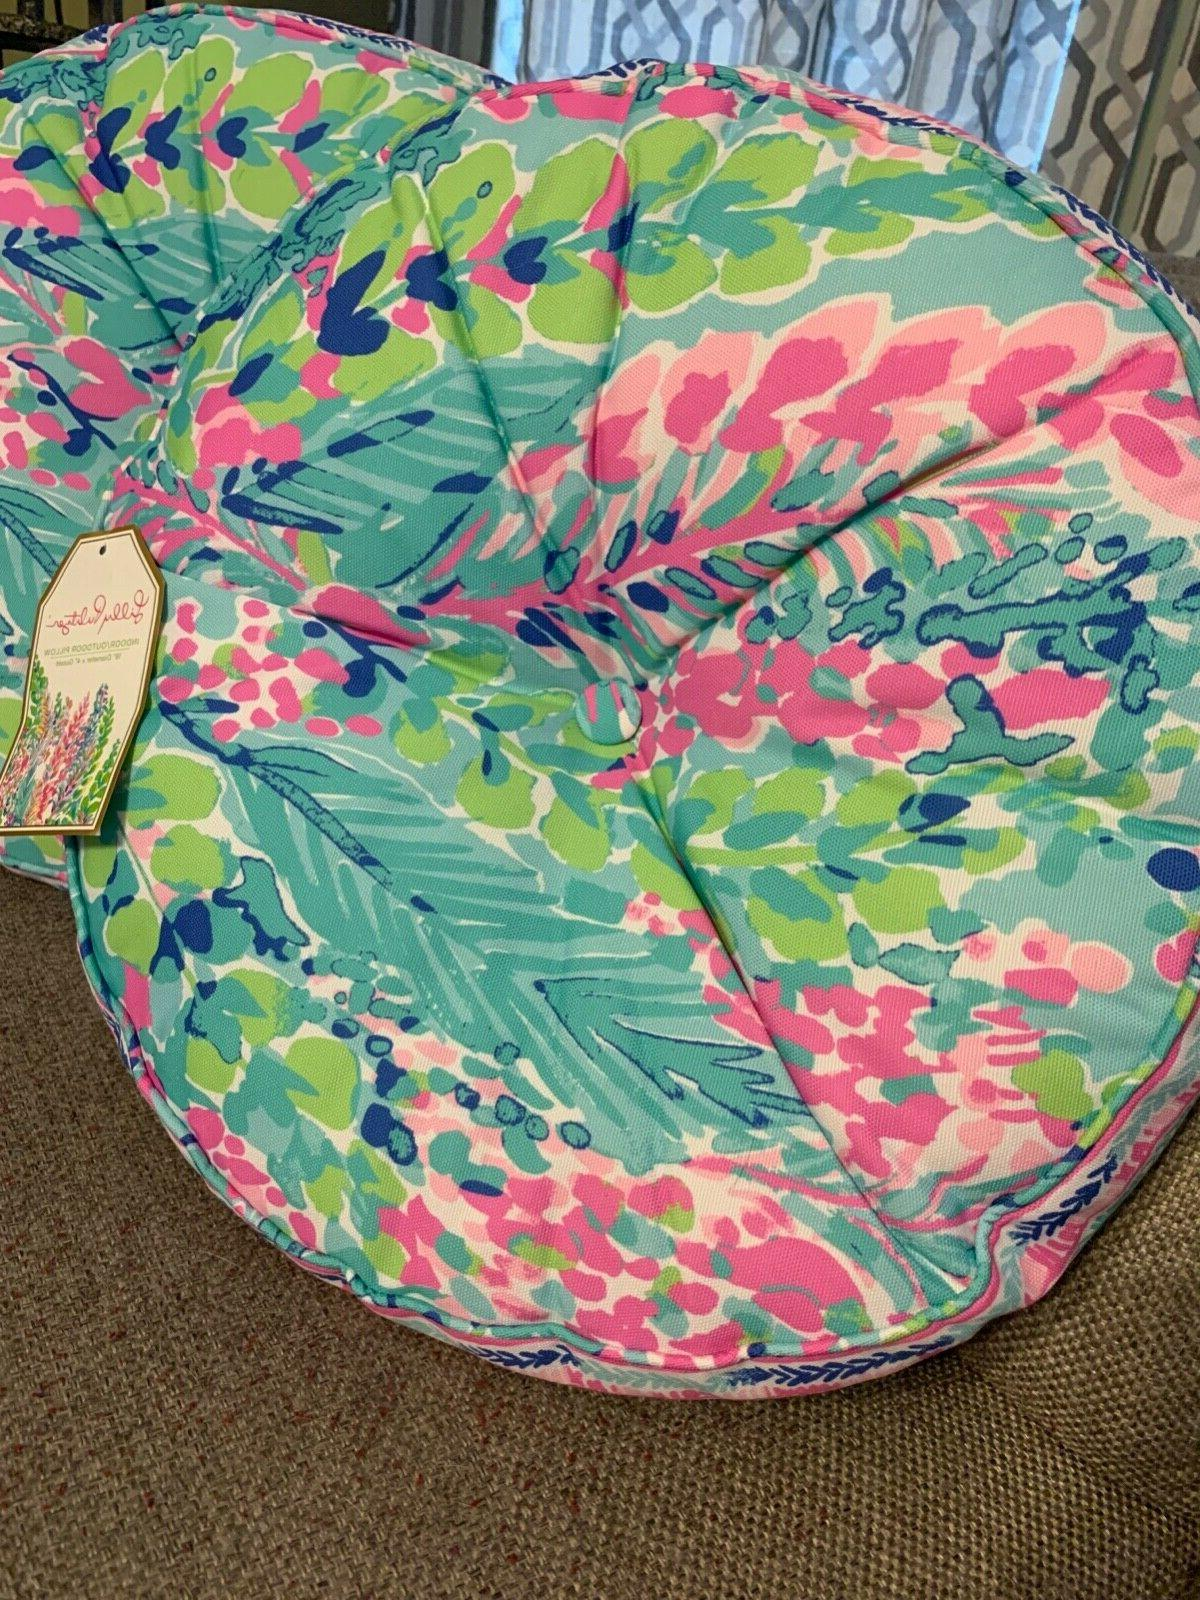 NWT Catch The Wave Toss Throw Pillows Pink Green